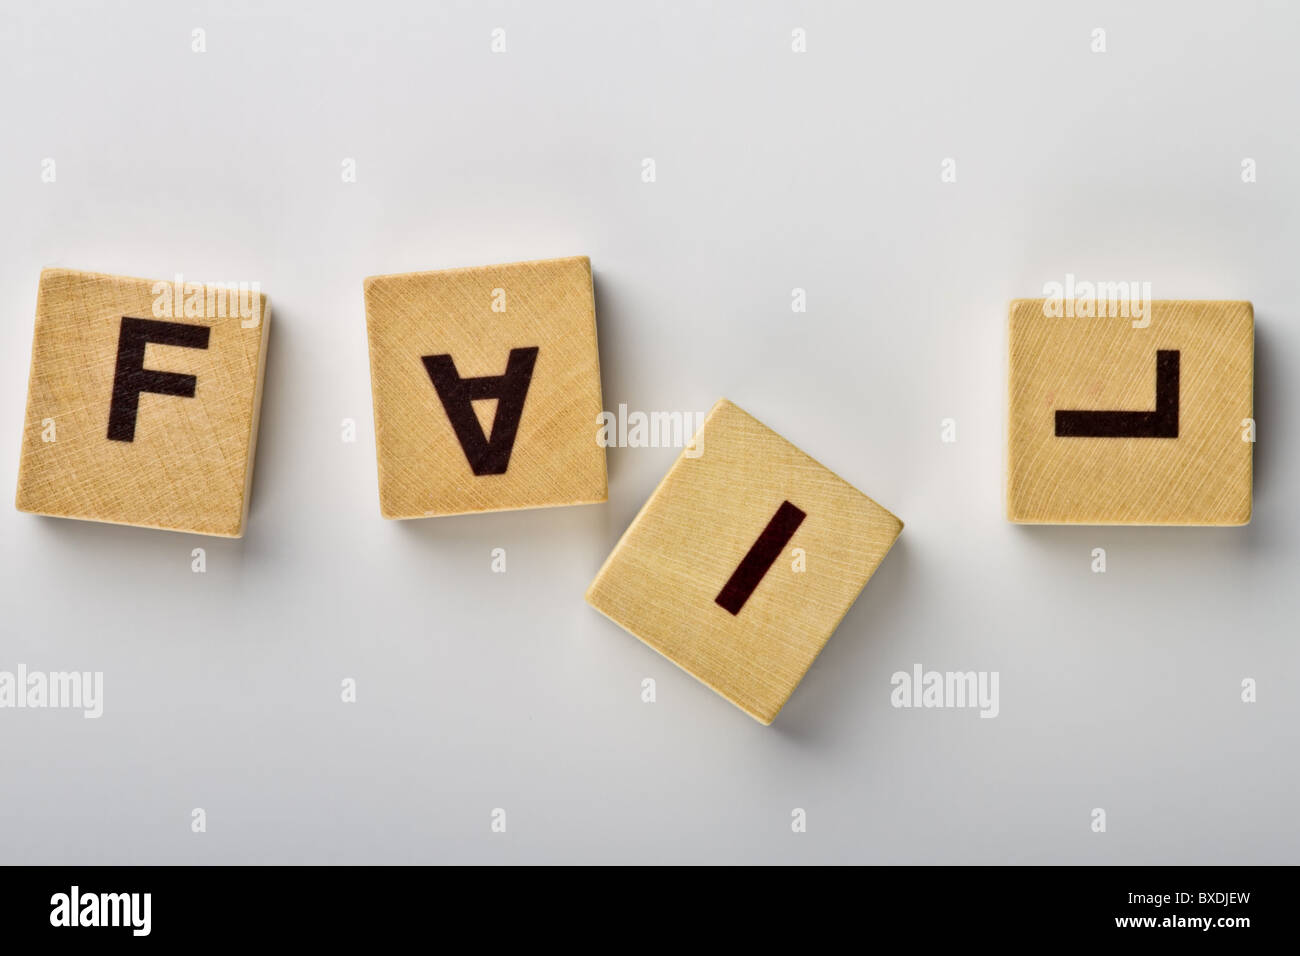 Wood magnets spelling 'FAIL' with leaning letters - Stock Image